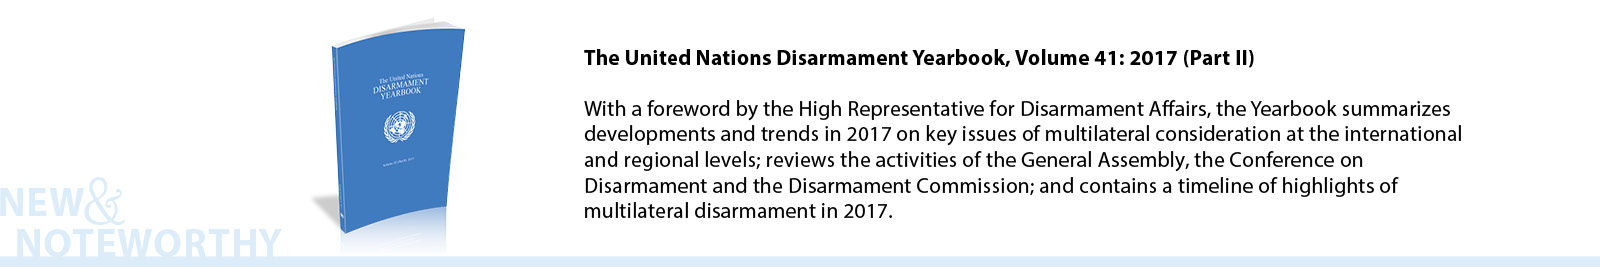 The United Nations Disarmament Yearbook, Volume 41: 2017 (Part II) - With a foreword by the High Representative for Disarmament Affairs, the Yearbook summarizes developments and trends in 2017 on key issues of multilateral consideration at the international and regional levels; reviews the activities of the General Assembly, the Conference on Disarmament and the Disarmament Commission; and contains a timeline of highlights of multilateral disarmament in 2017.